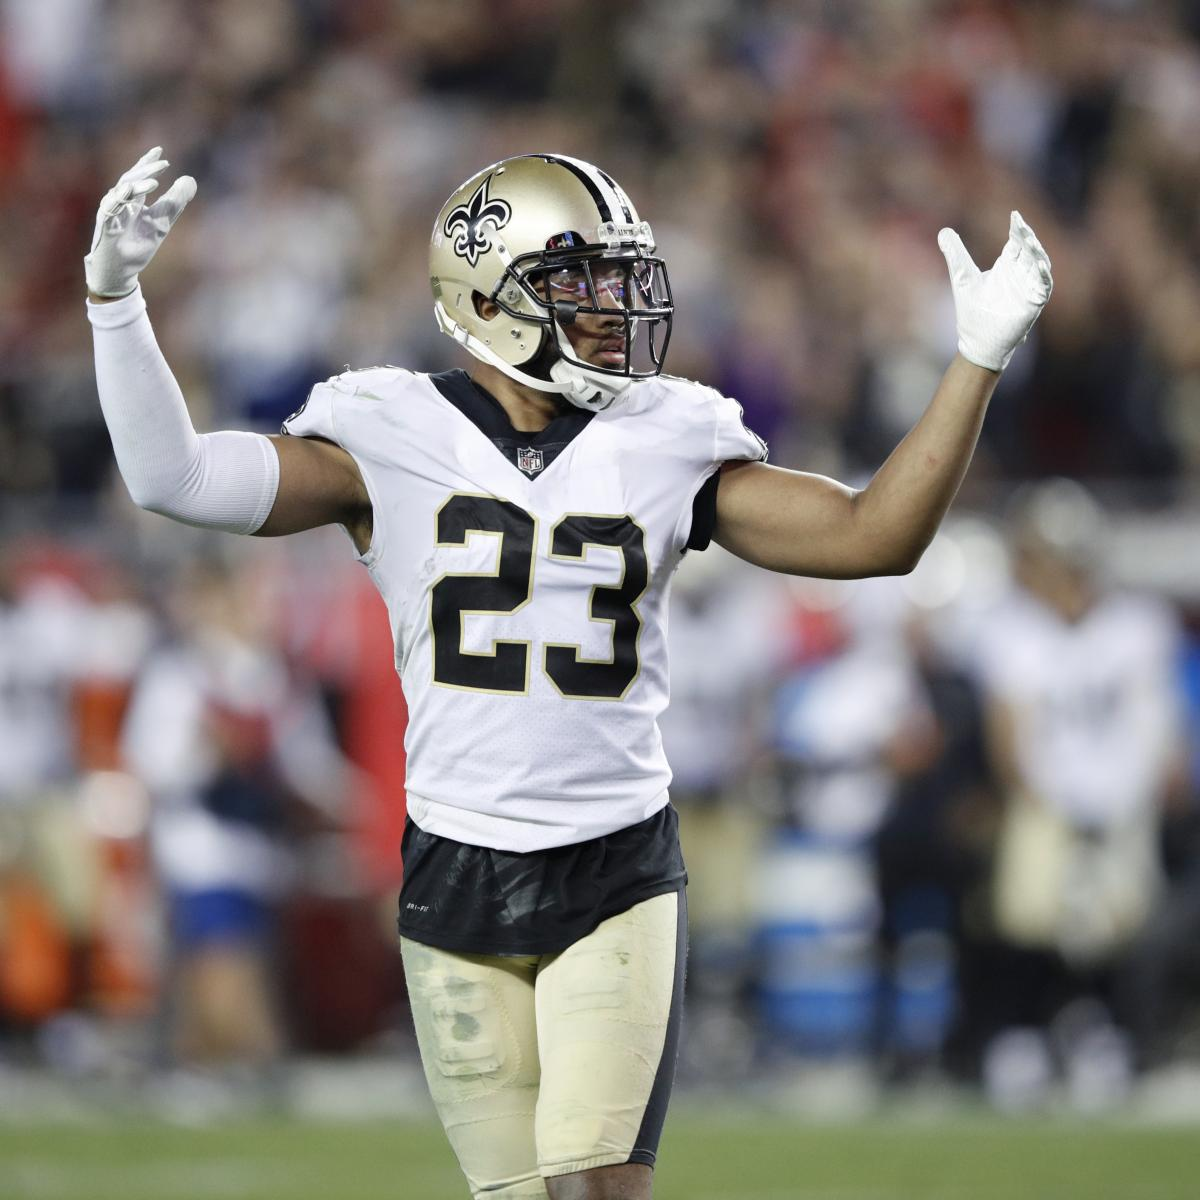 New Cover S Alert The 2017 18 Nba Rookies: Marshon Lattimore Wins 2017-18 NFL Defensive Rookie Of The